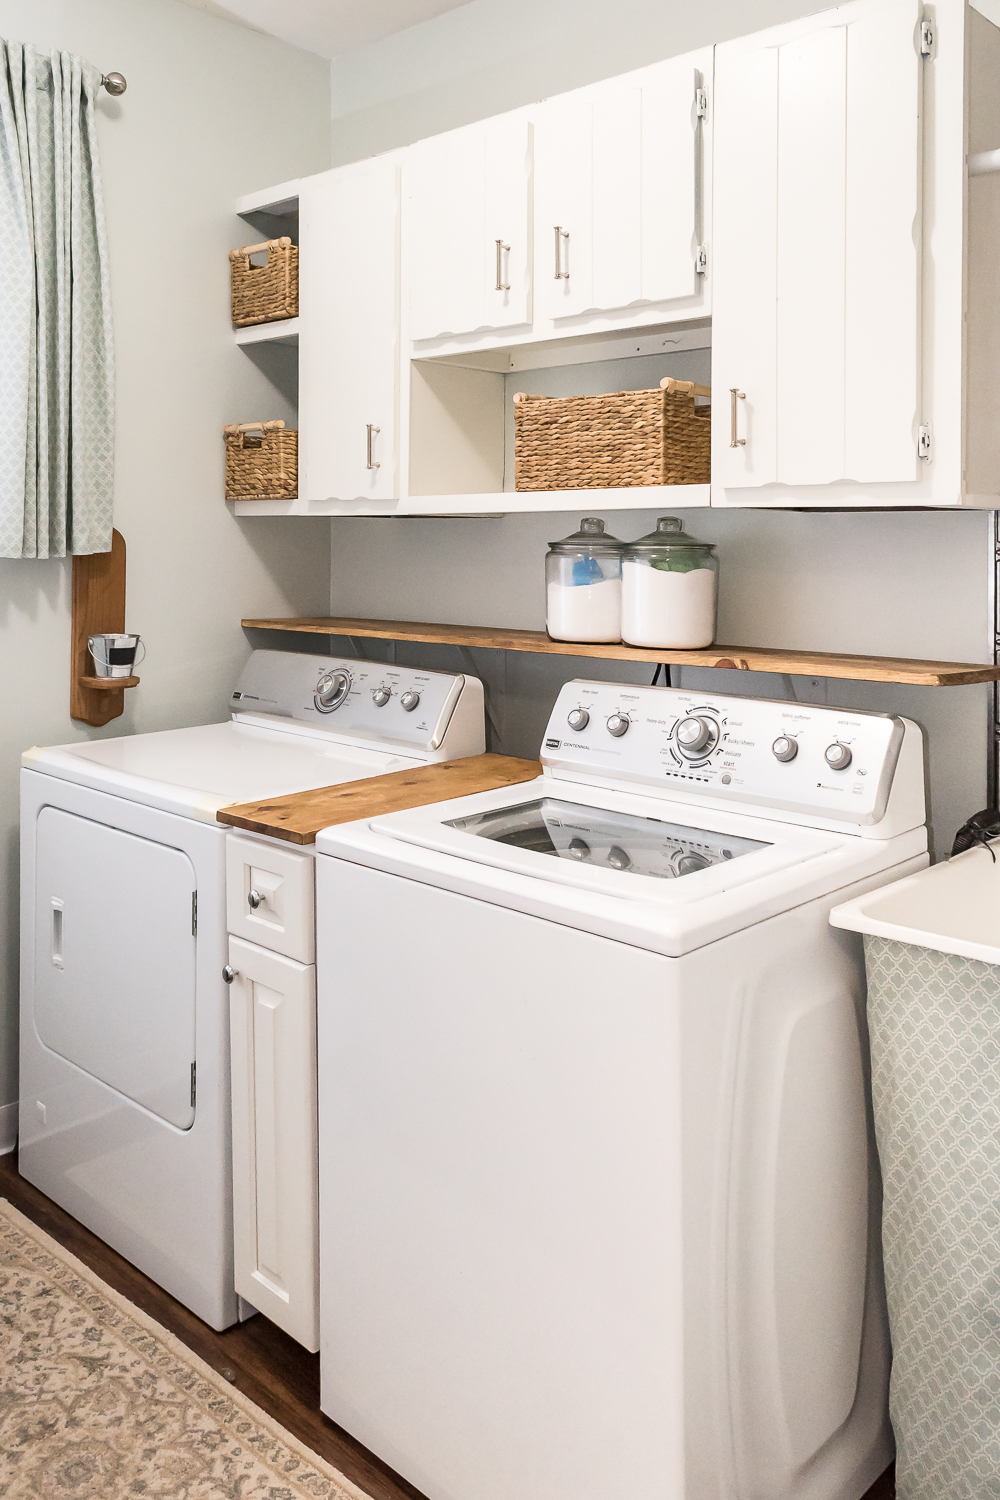 the-weathered-fox-laundry-room-makeover-17